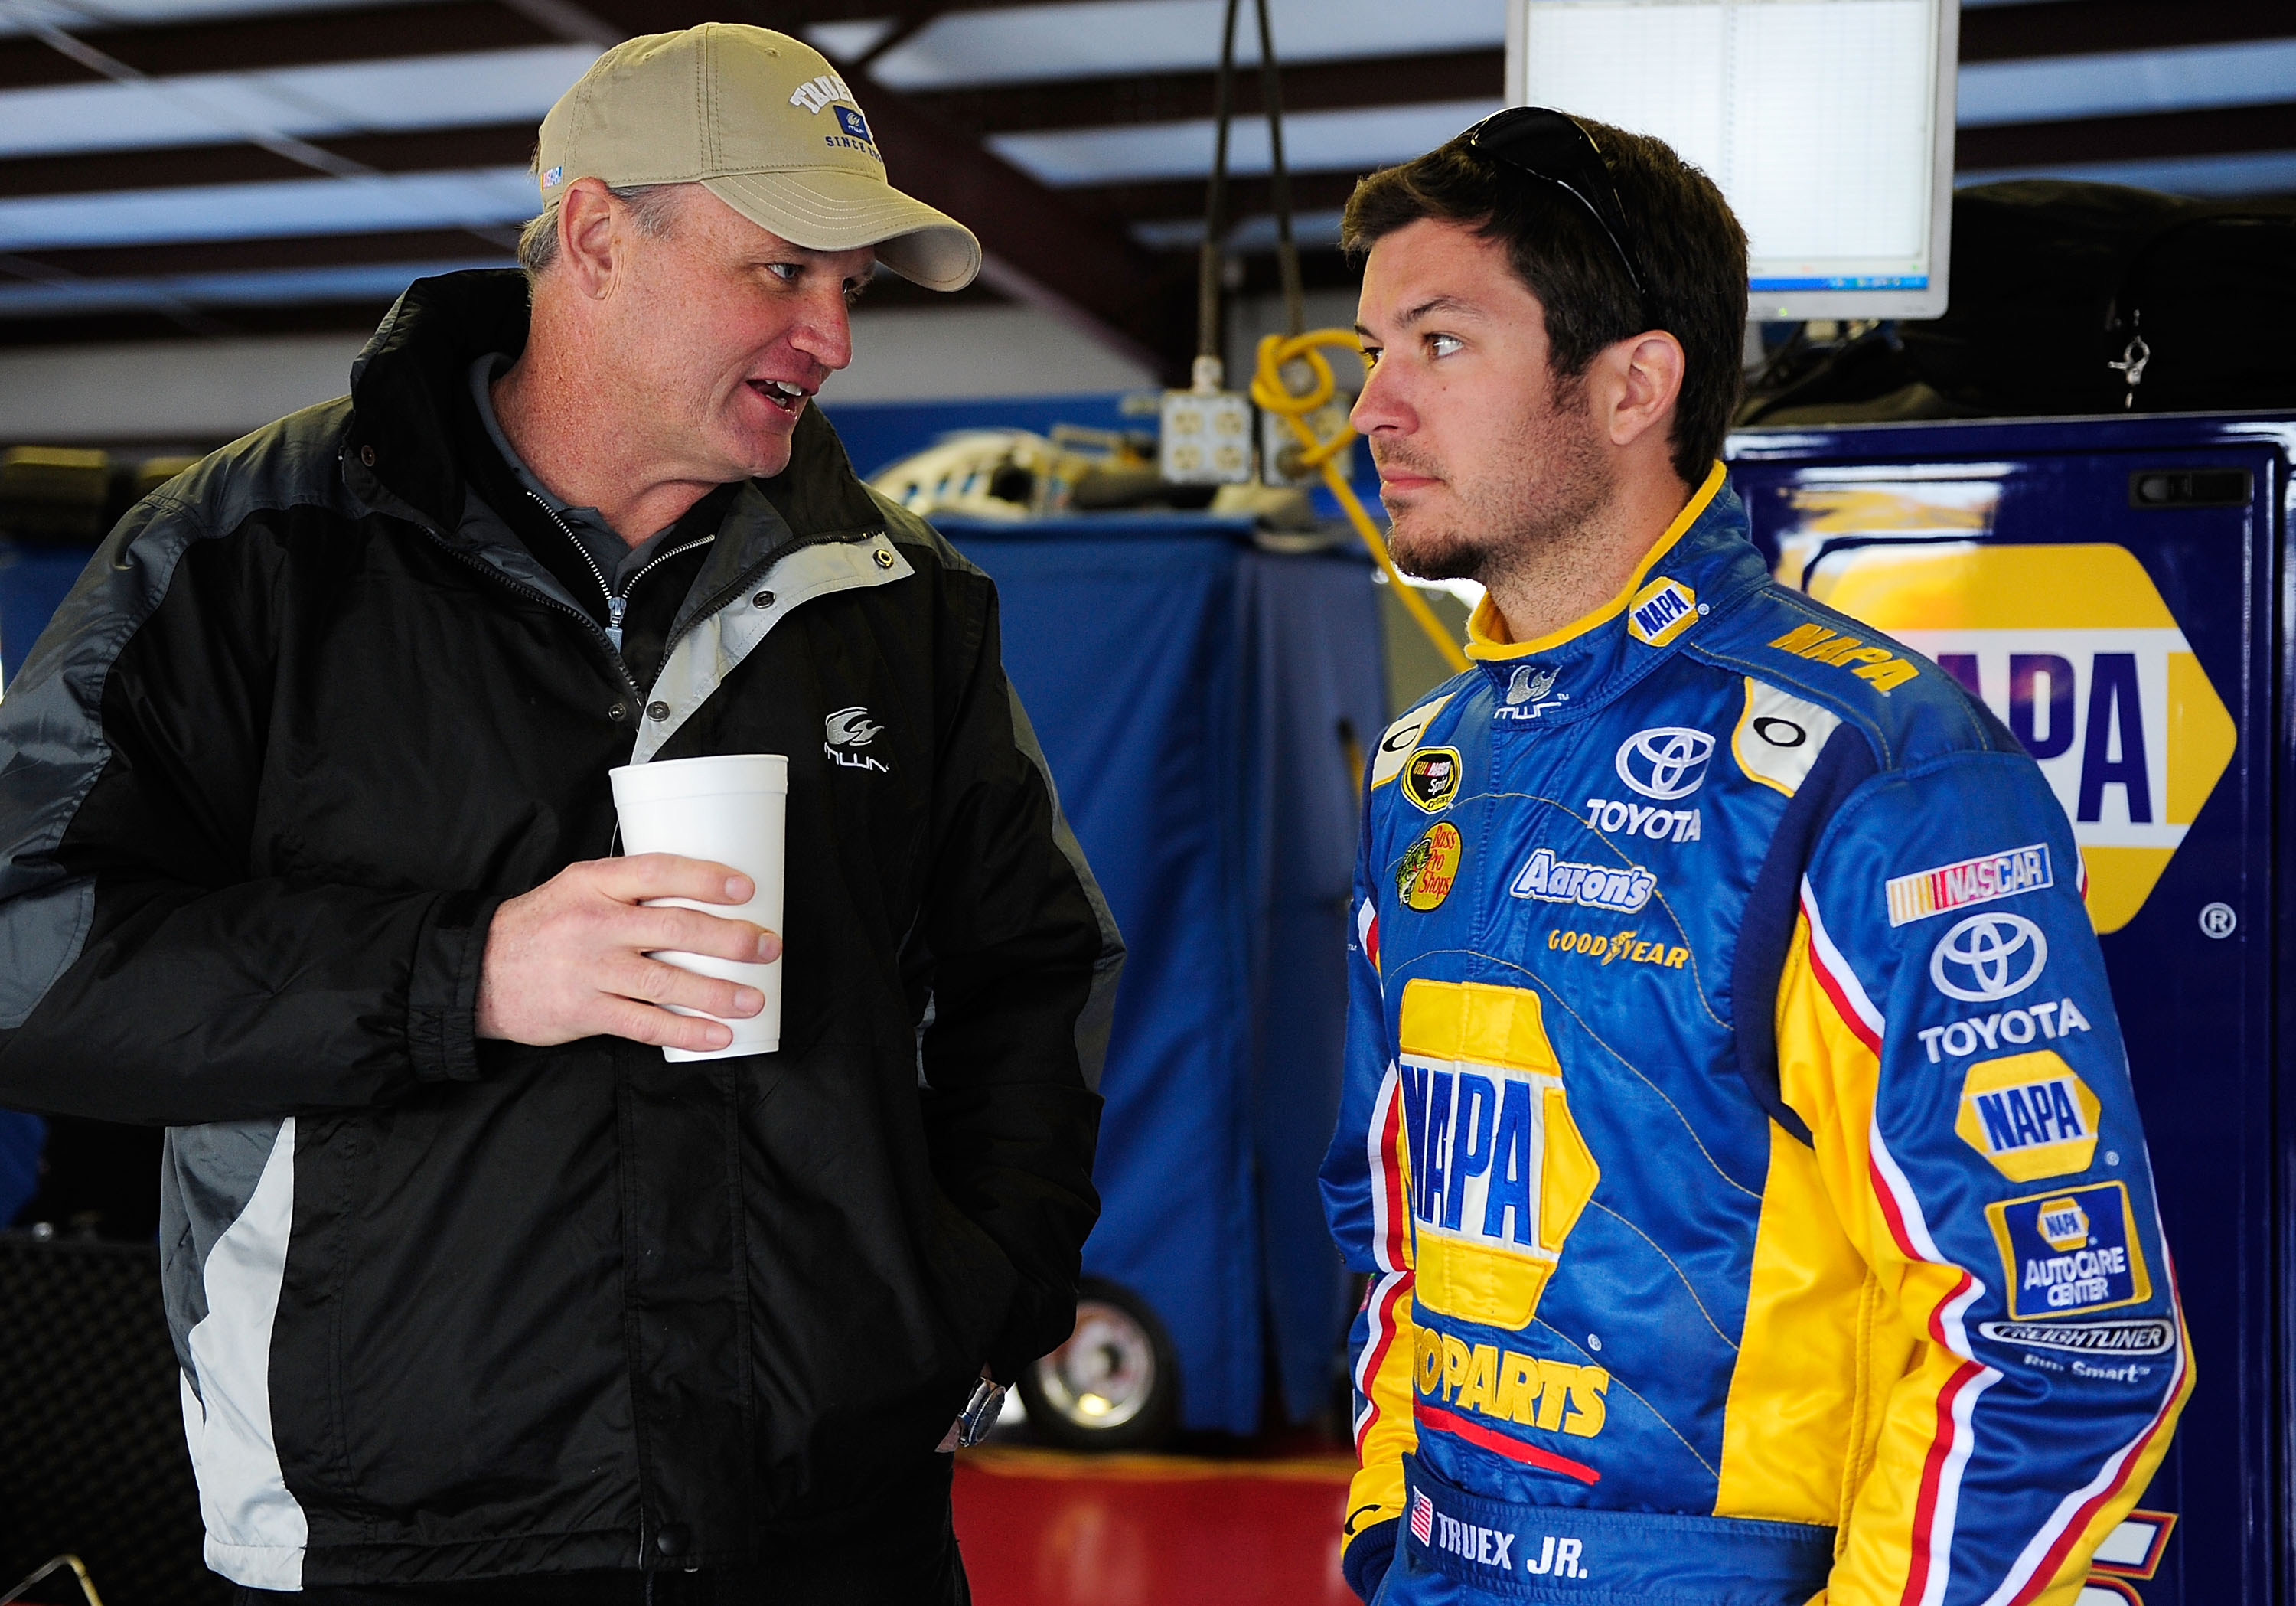 TALLADEGA, AL - MARCH 16:  Pat Tryson speaks with Martin Truex Jr., driver of the #56 NAPA Toyota in the garage during testing for the NASCAR Sprint Cup Series at Talladega Superspeedway on March 16, 2010 in Talladega, Alabama.  (Photo by Rusty Jarrett/Ge